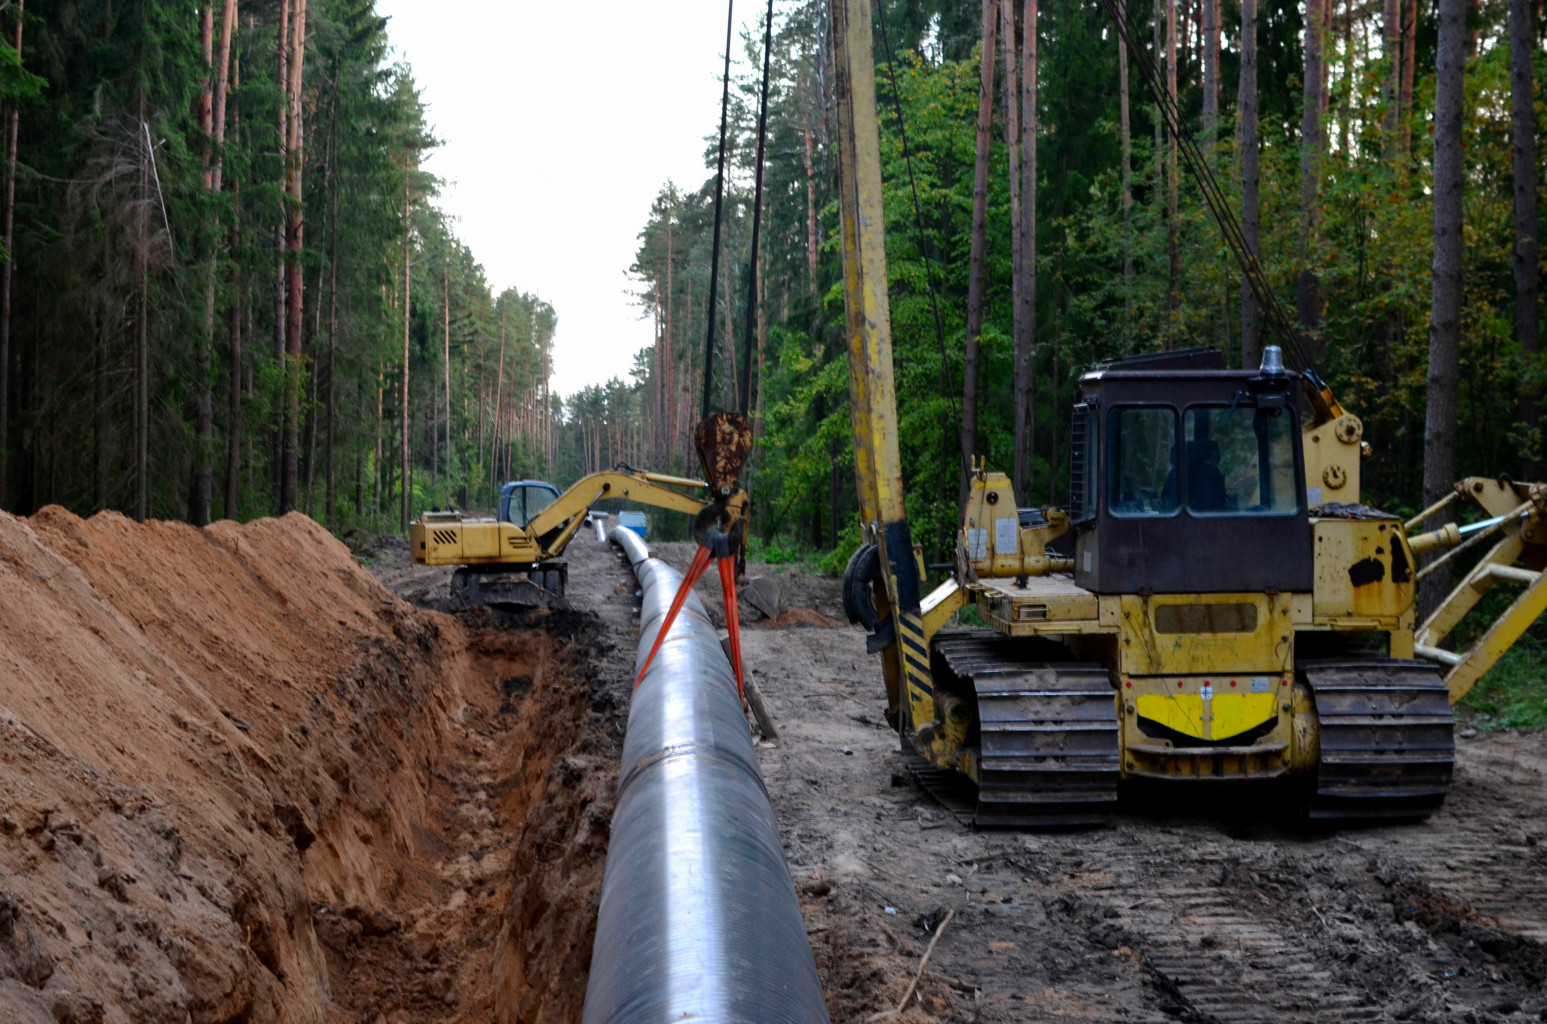 Tractors setting up gas pipeline in forest